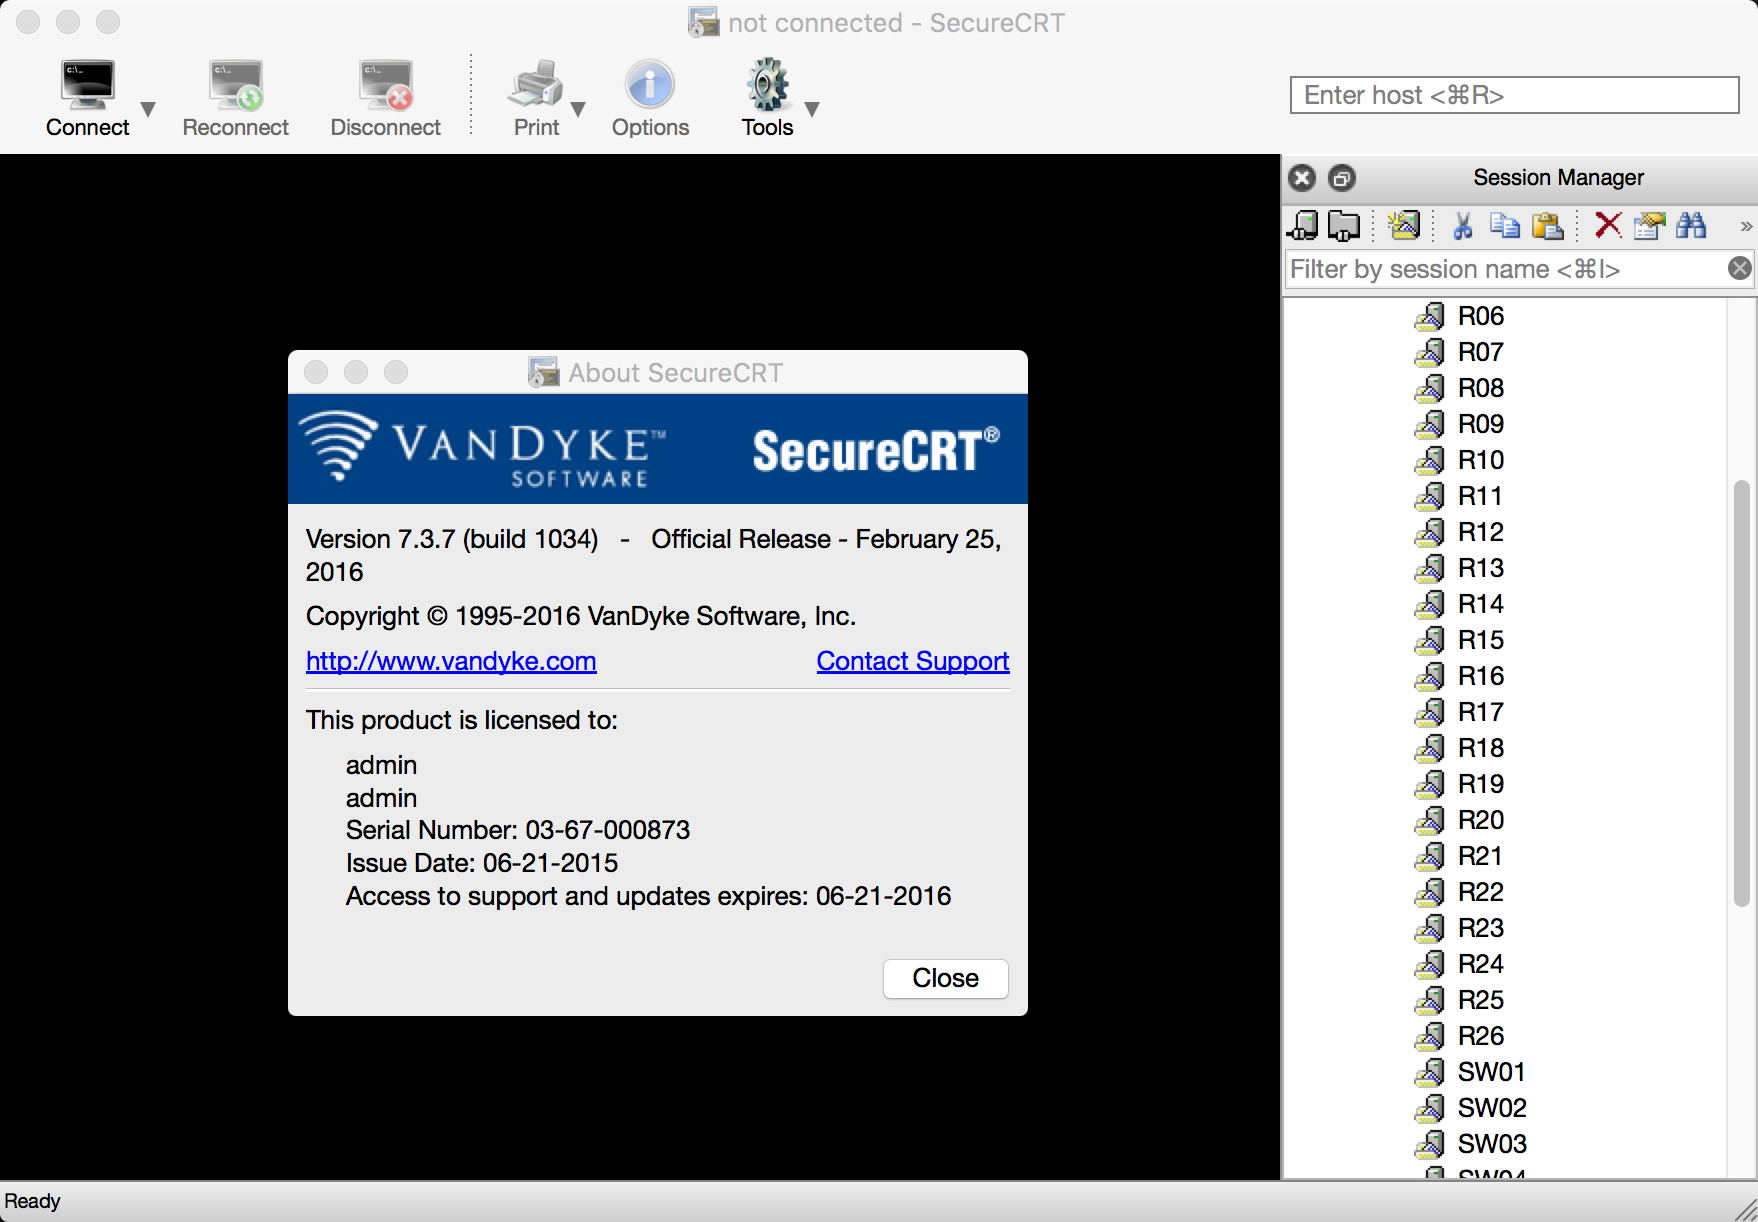 SecureCRT/FX 7.3.7(build 1034) for Mac